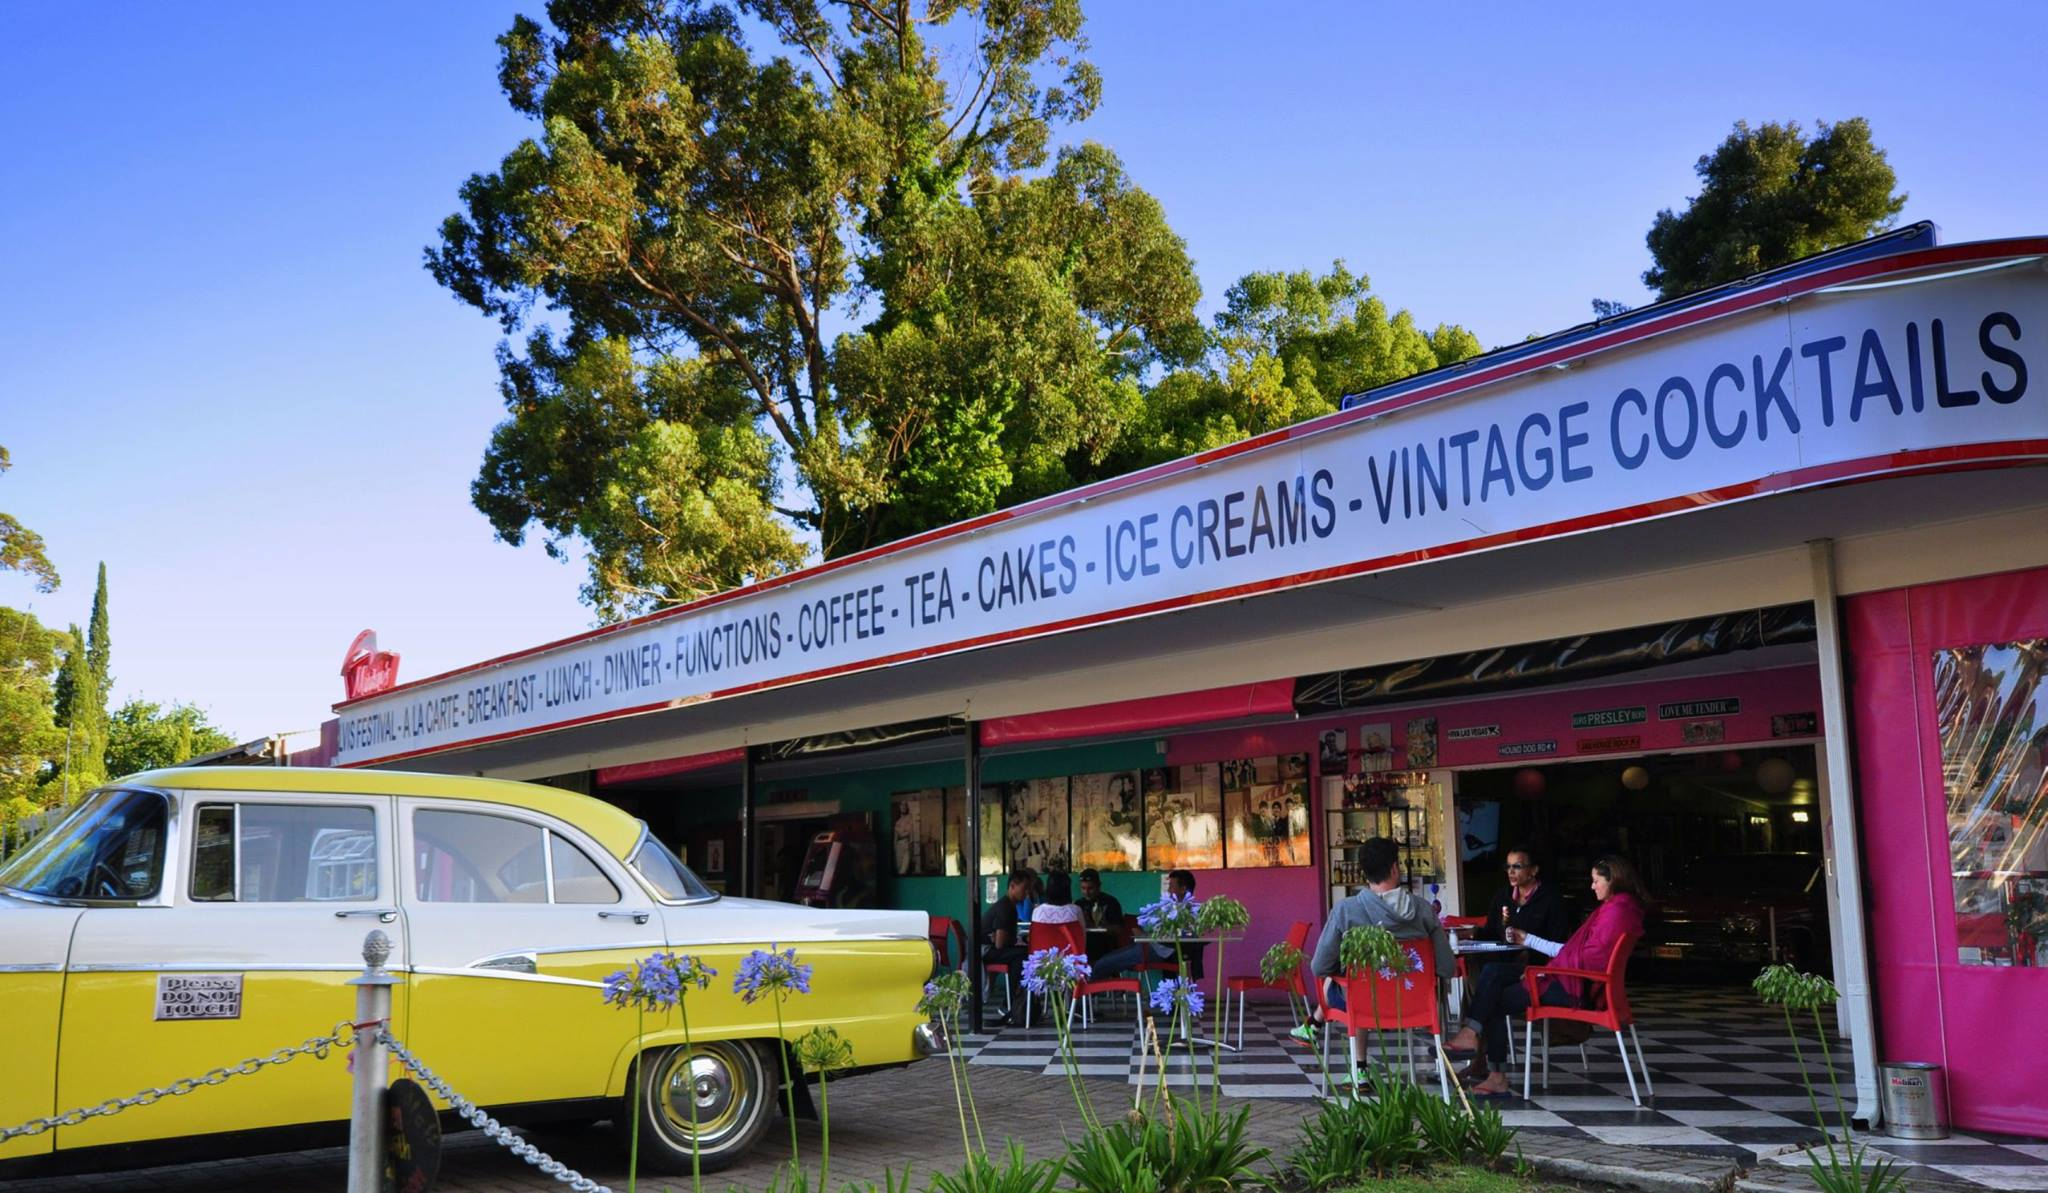 Marilyn S 60 S Diner Marilyn S 60 S Diner Storms River Village Breakfast Burgers Plett Tourism Accommodation Events Festivals Restaurants And Activities In Plettenberg Bay